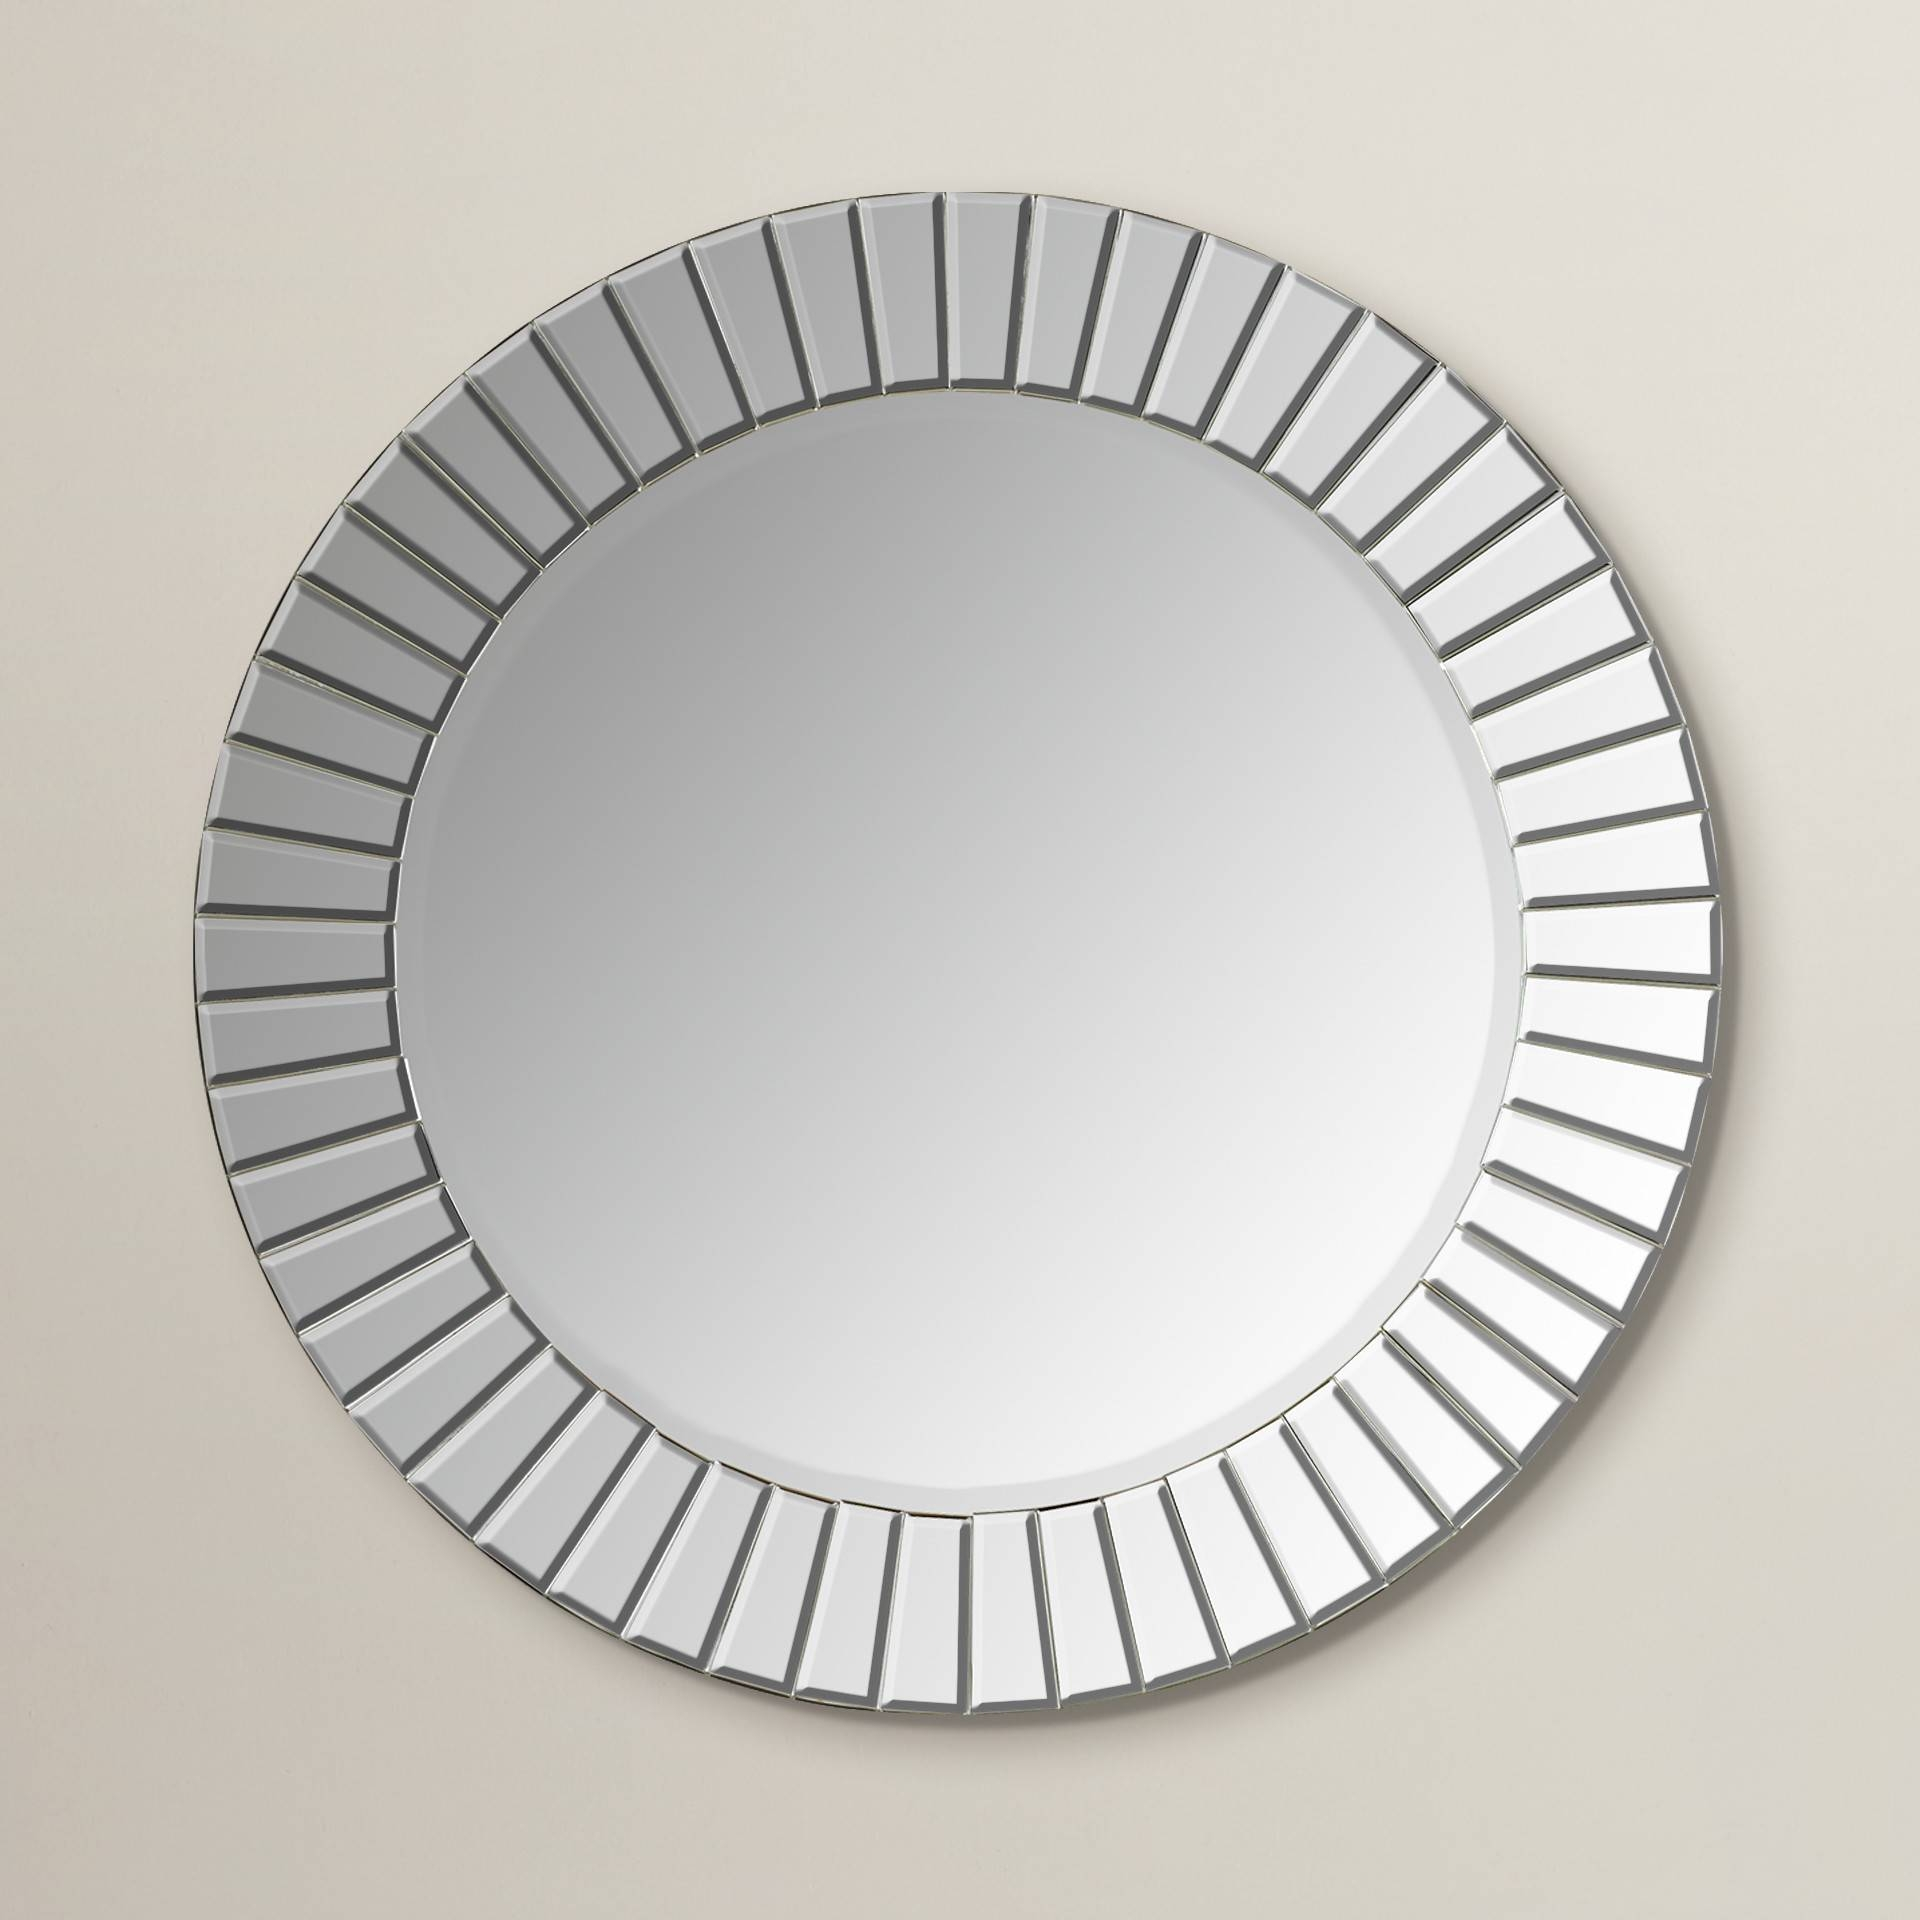 Bathroom: Light Up Your Home With Frameless Beveled Mirror with Frameless Wall Mirrors (Image 2 of 15)